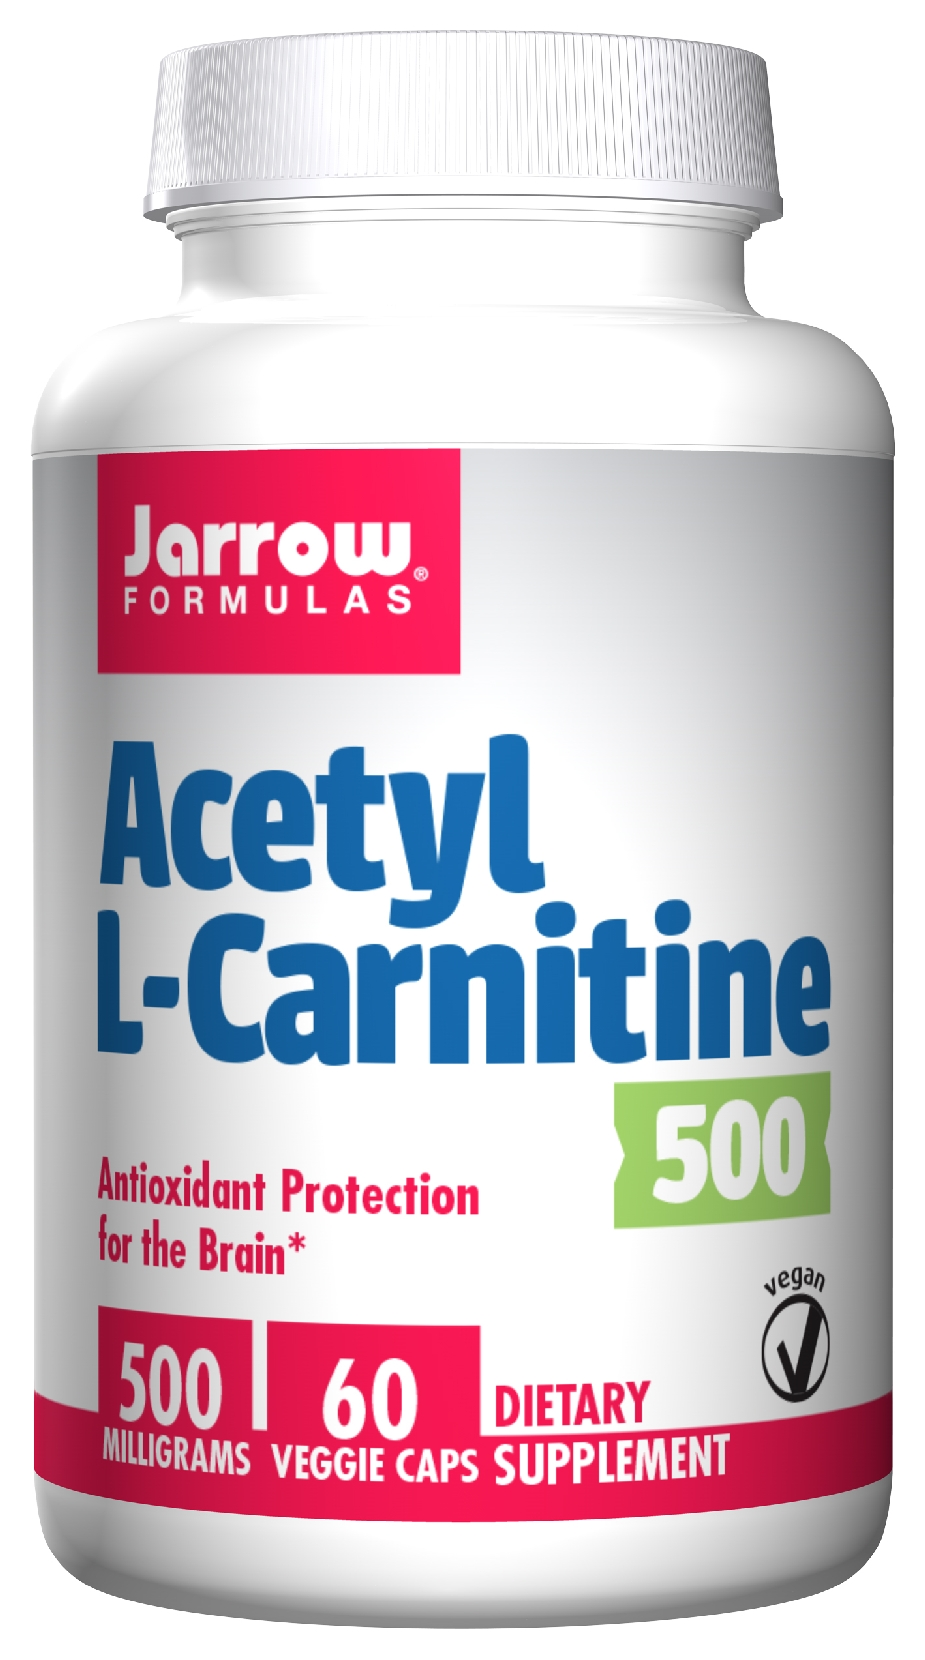 Acetyl L-Carnitine 500 mg 60 Vegetarian caps by Jarrow Formulas